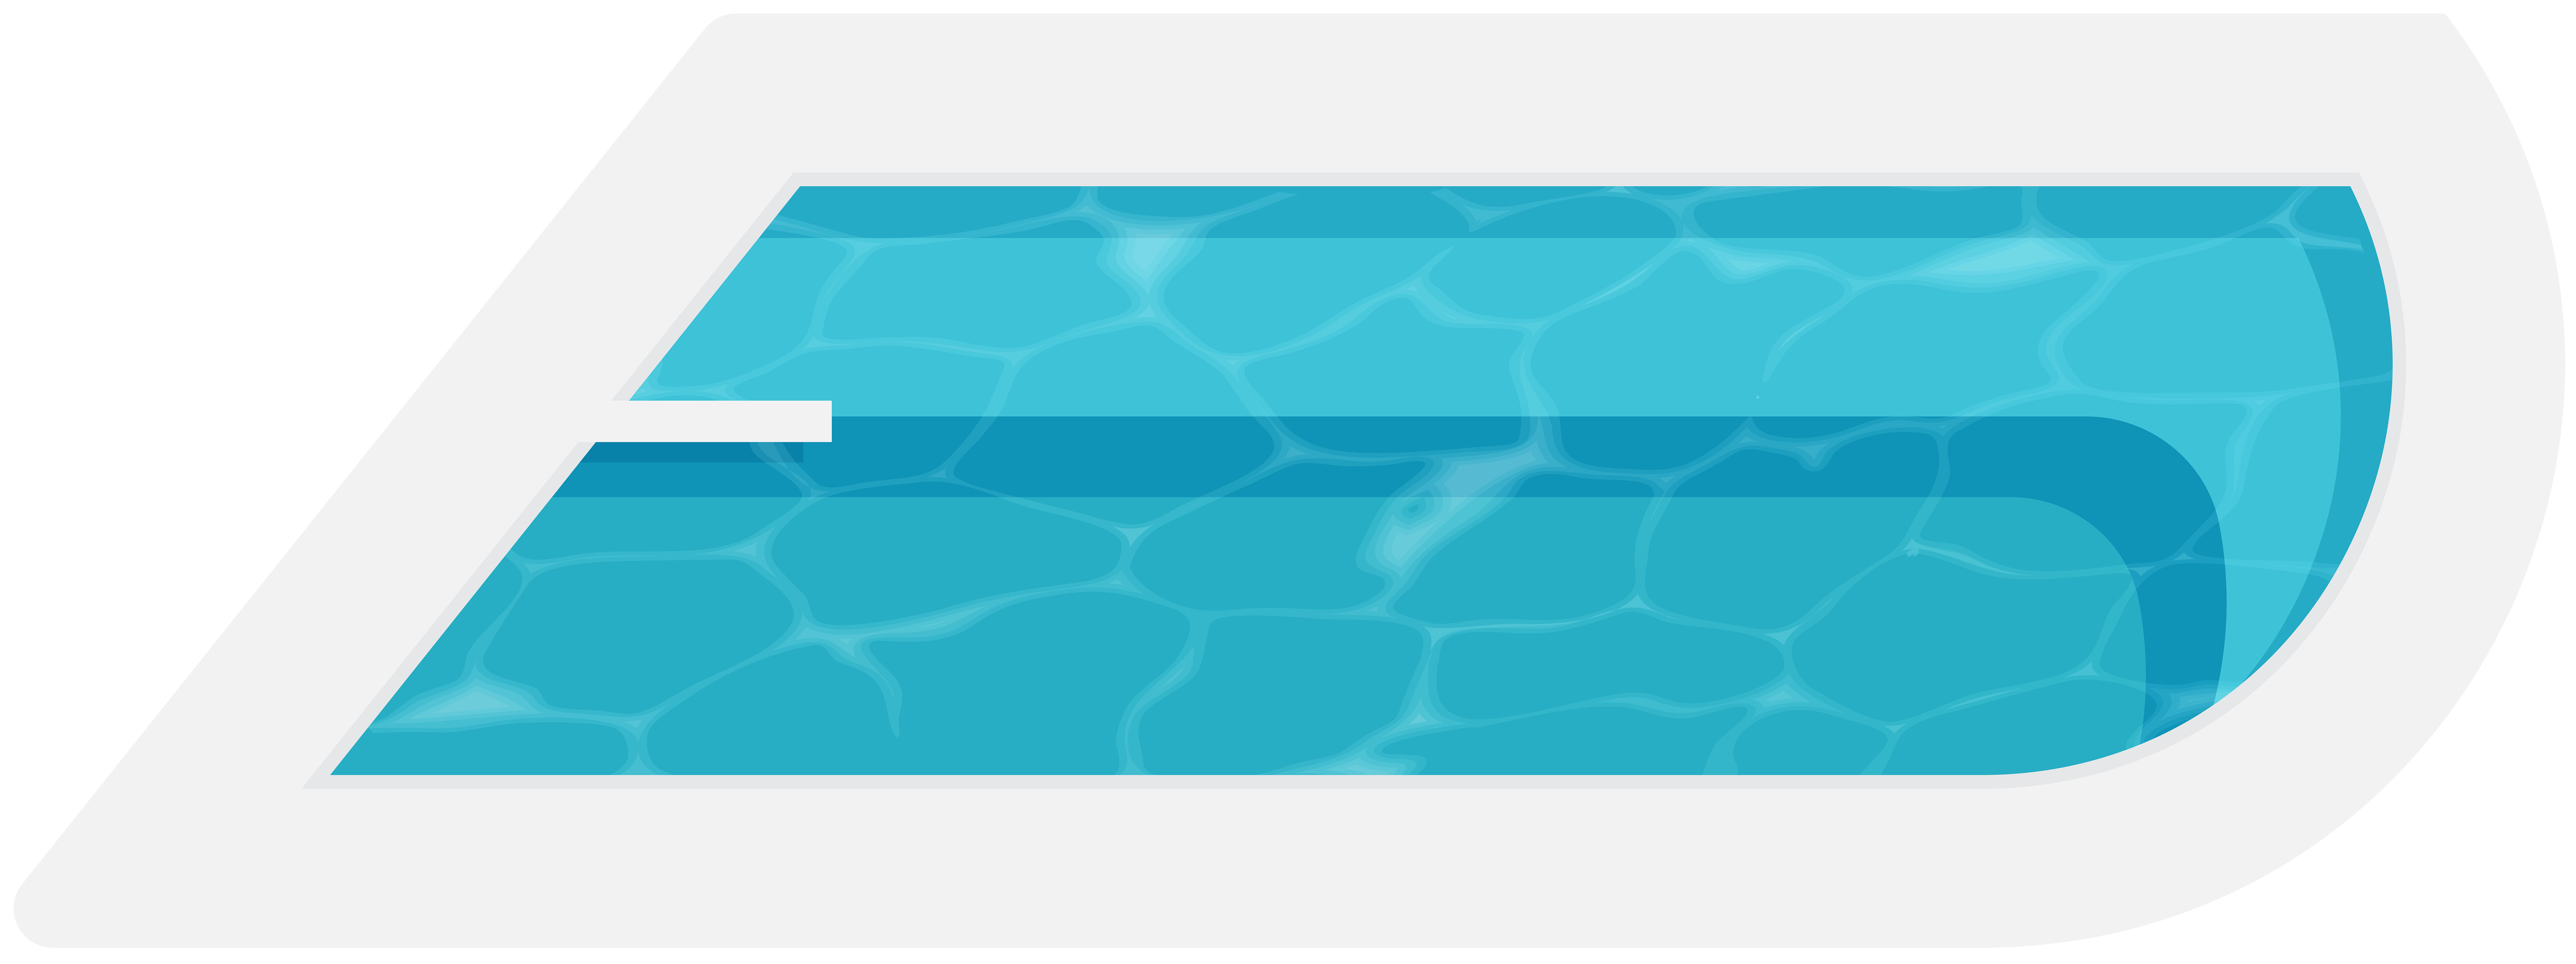 Pool png. Swimming clip art best